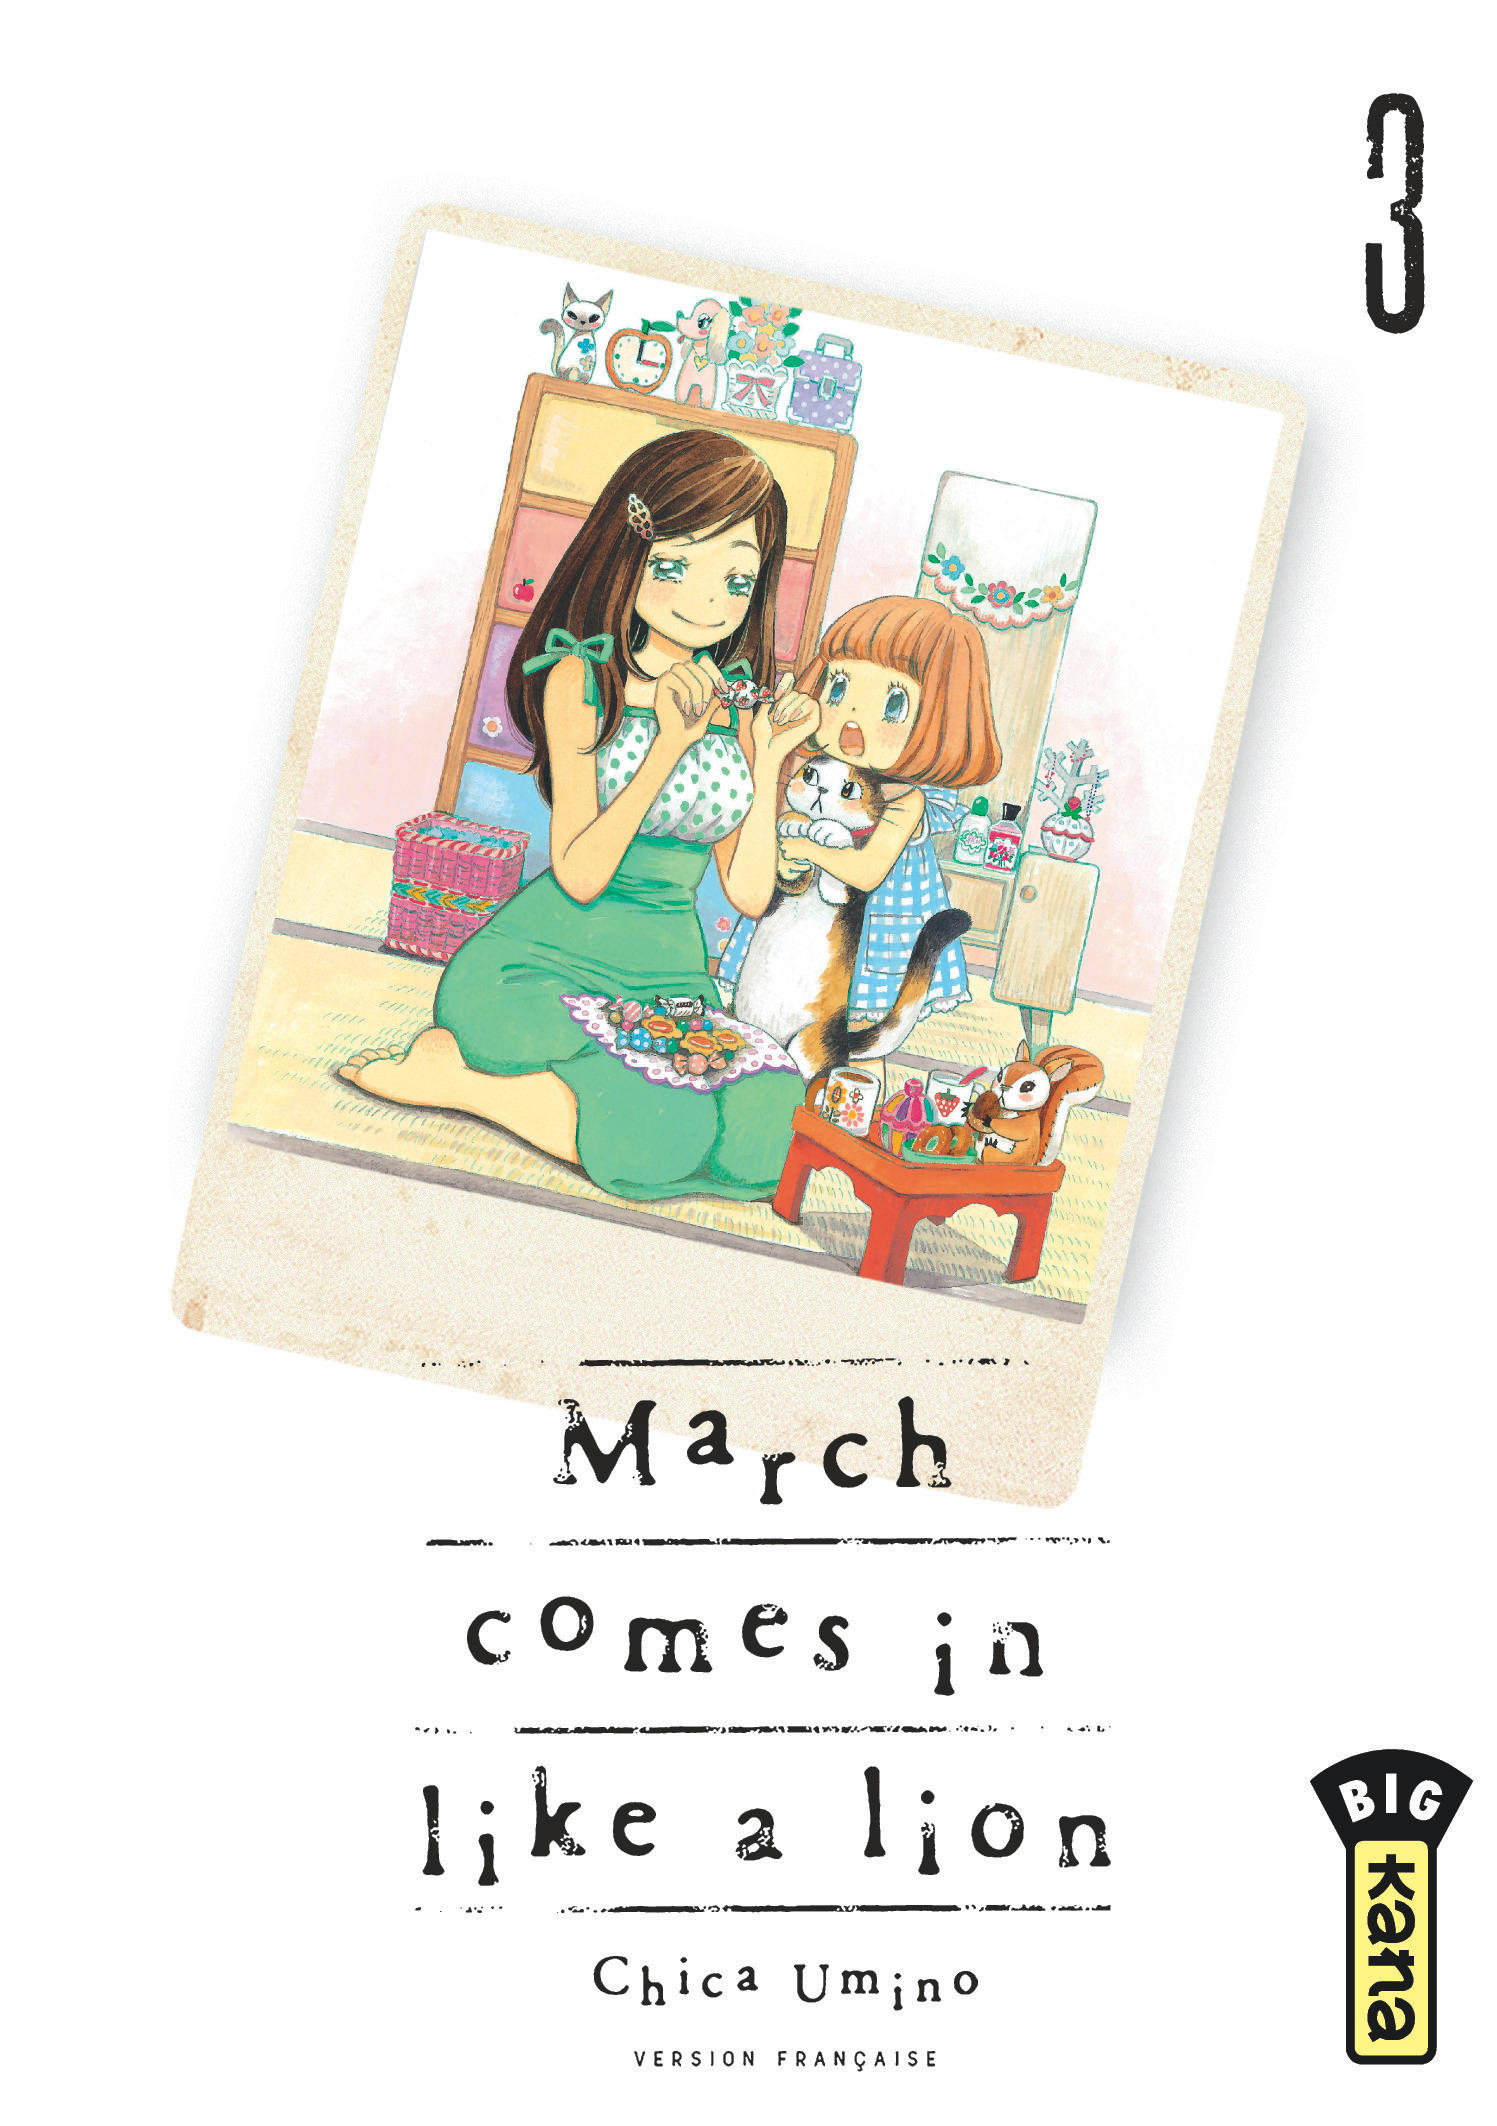 March comes in like a lion 3